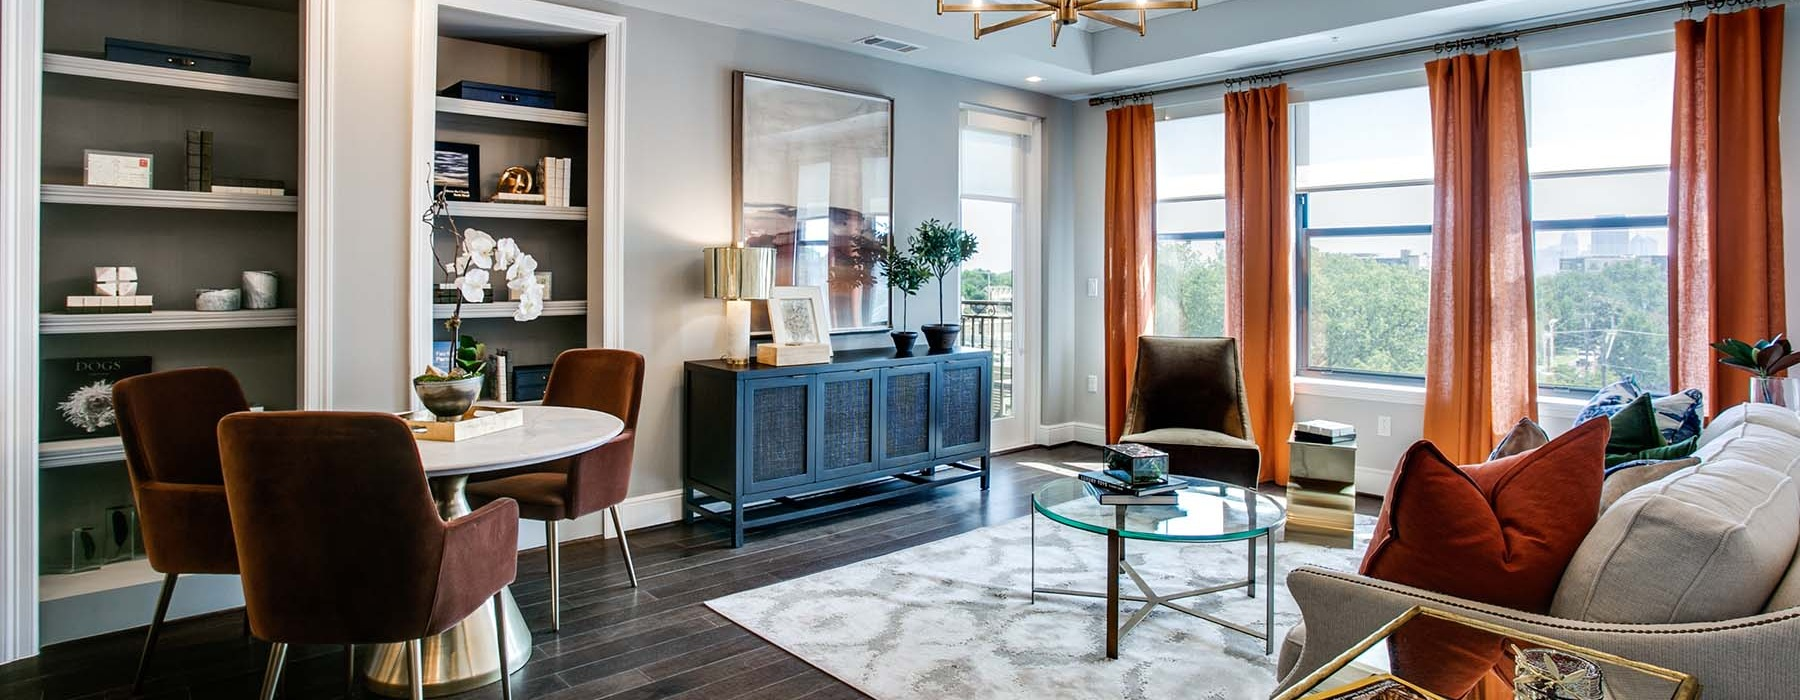 Living features multiple large windows and built-in bookcases